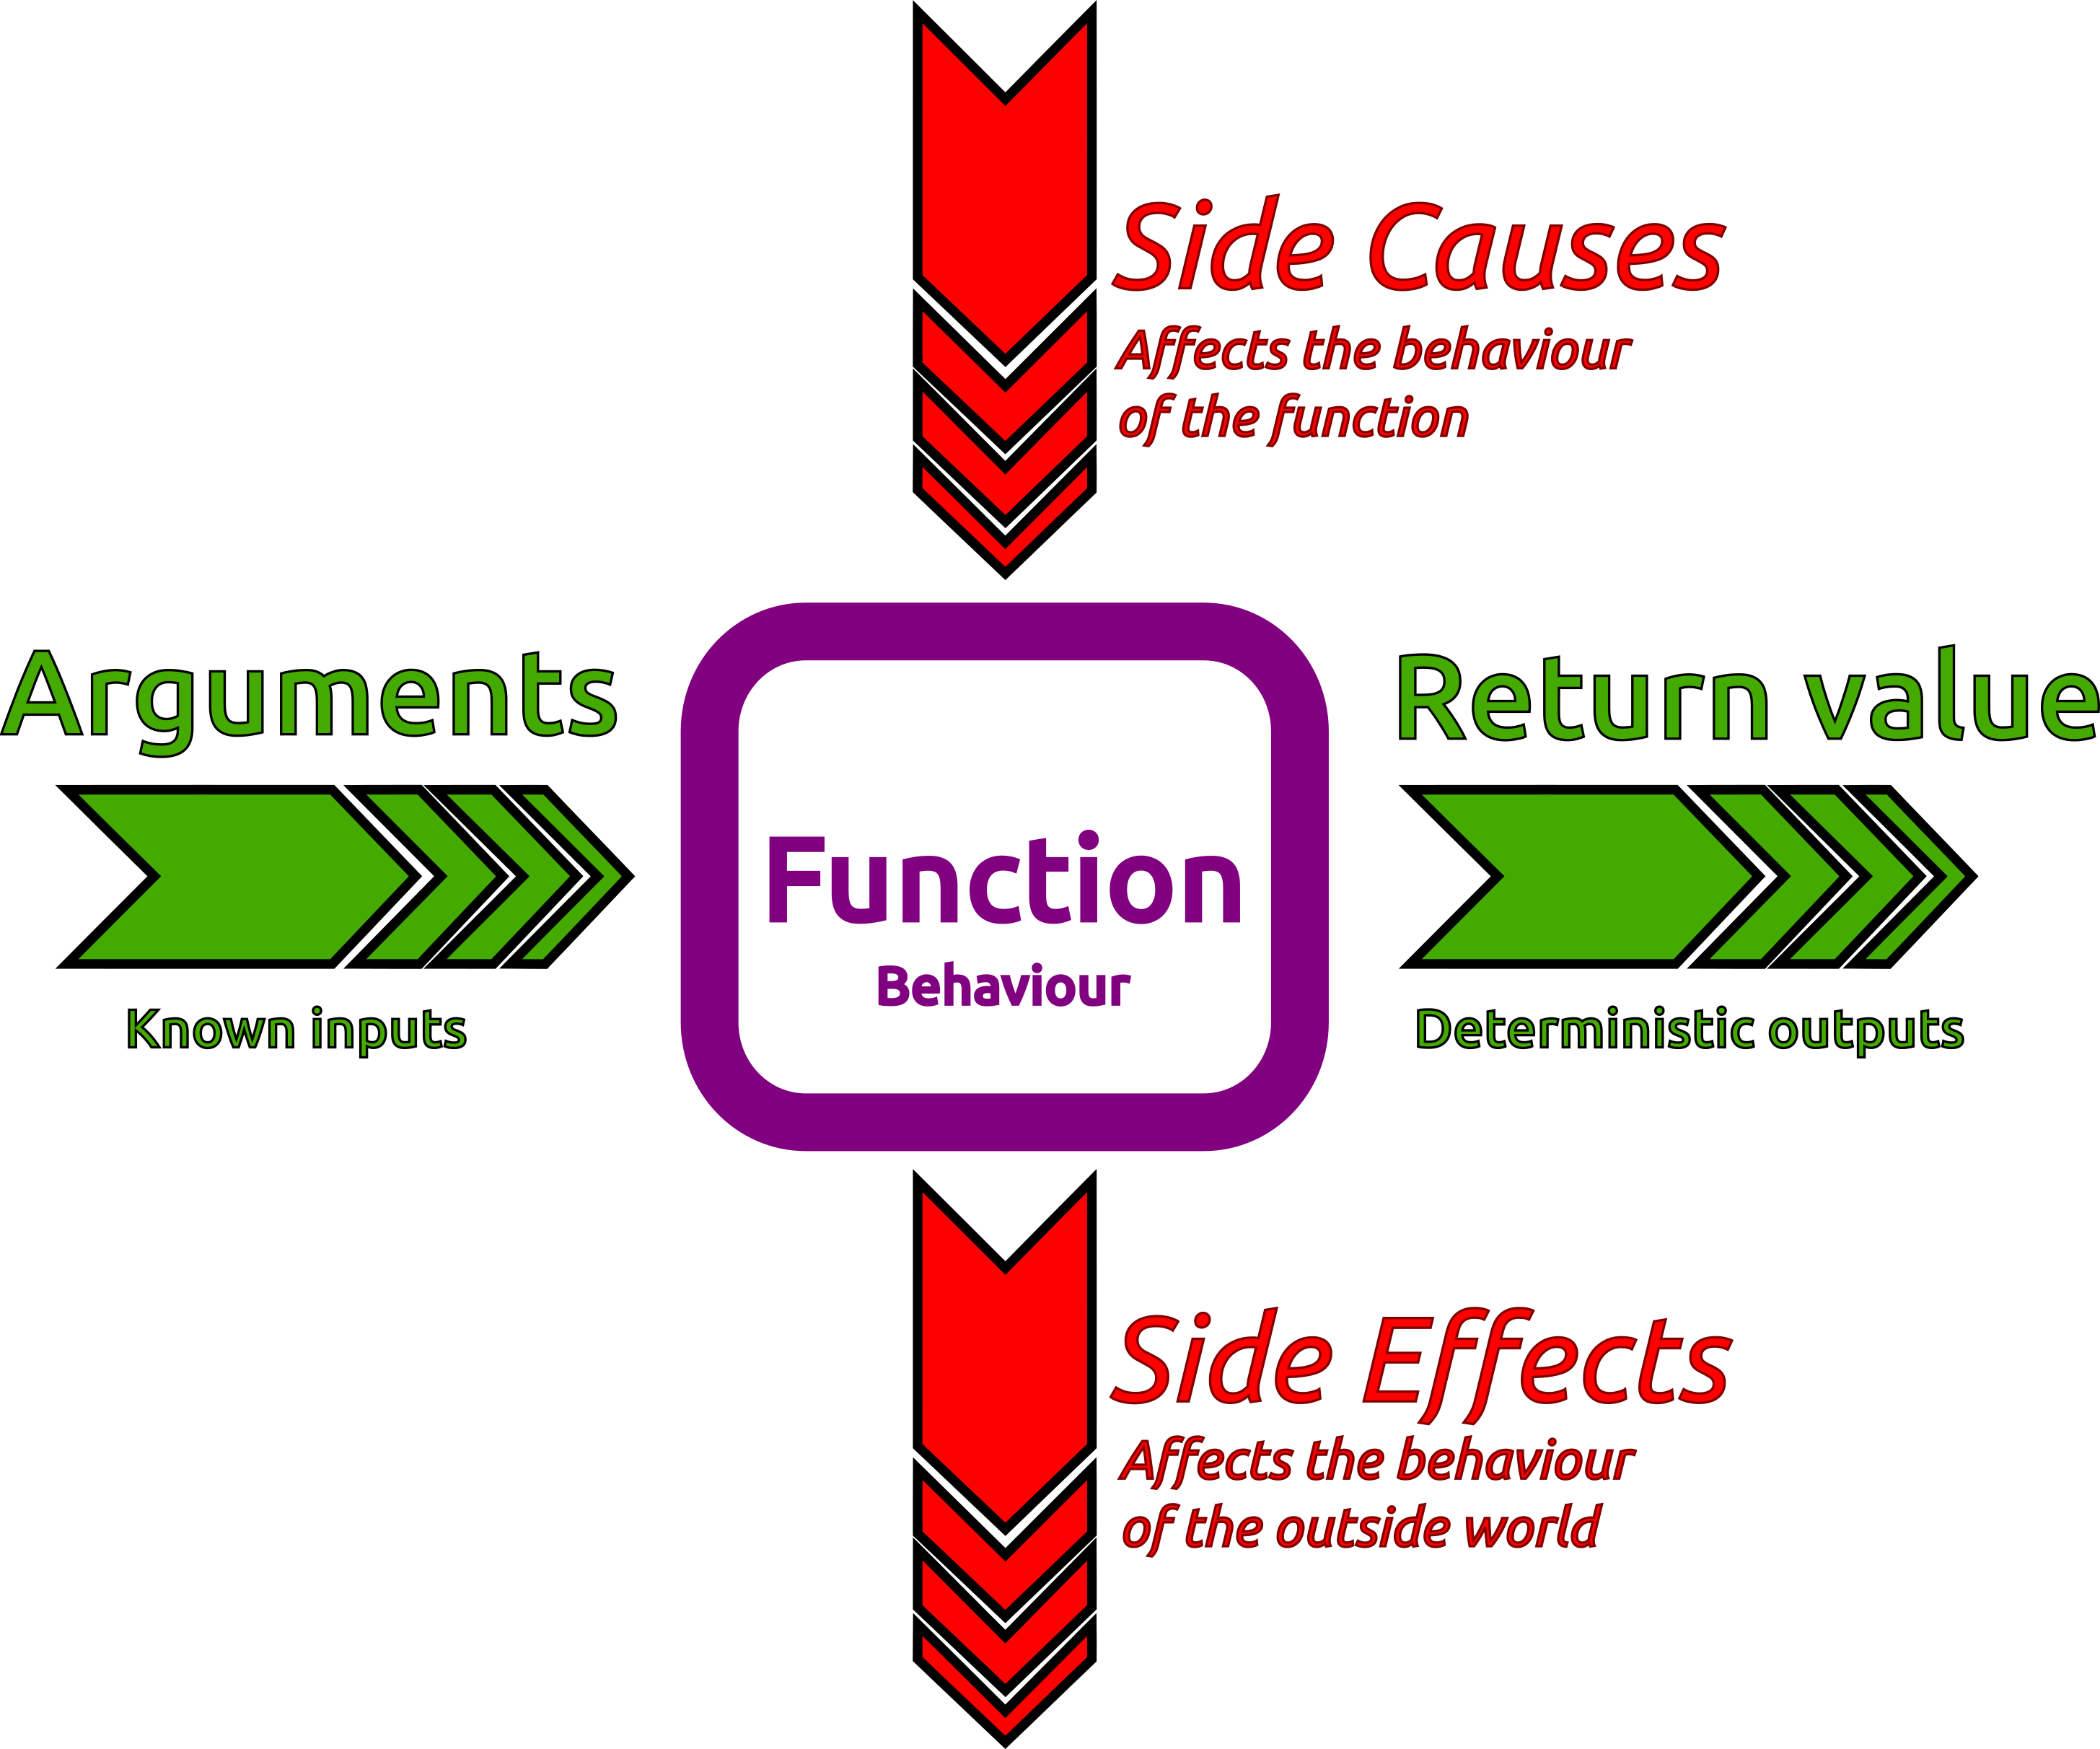 Clojure vector github. Side effects practicalli causes